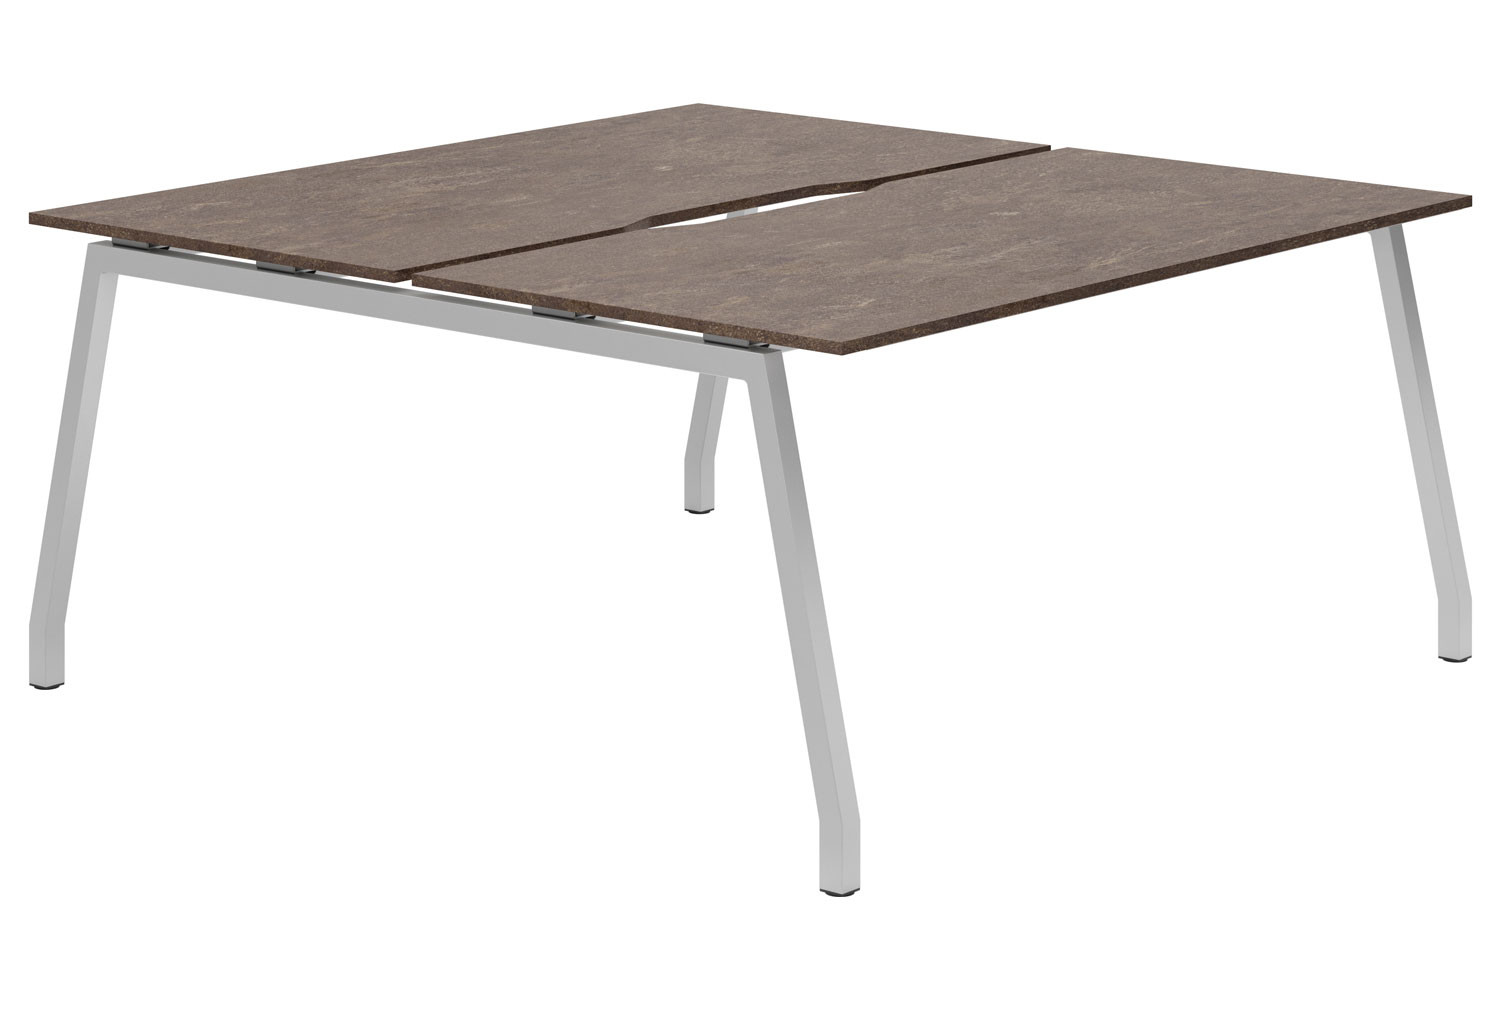 Lasso A-Frame 2 Person Back To Back Bench Desk (Pitted Steel)